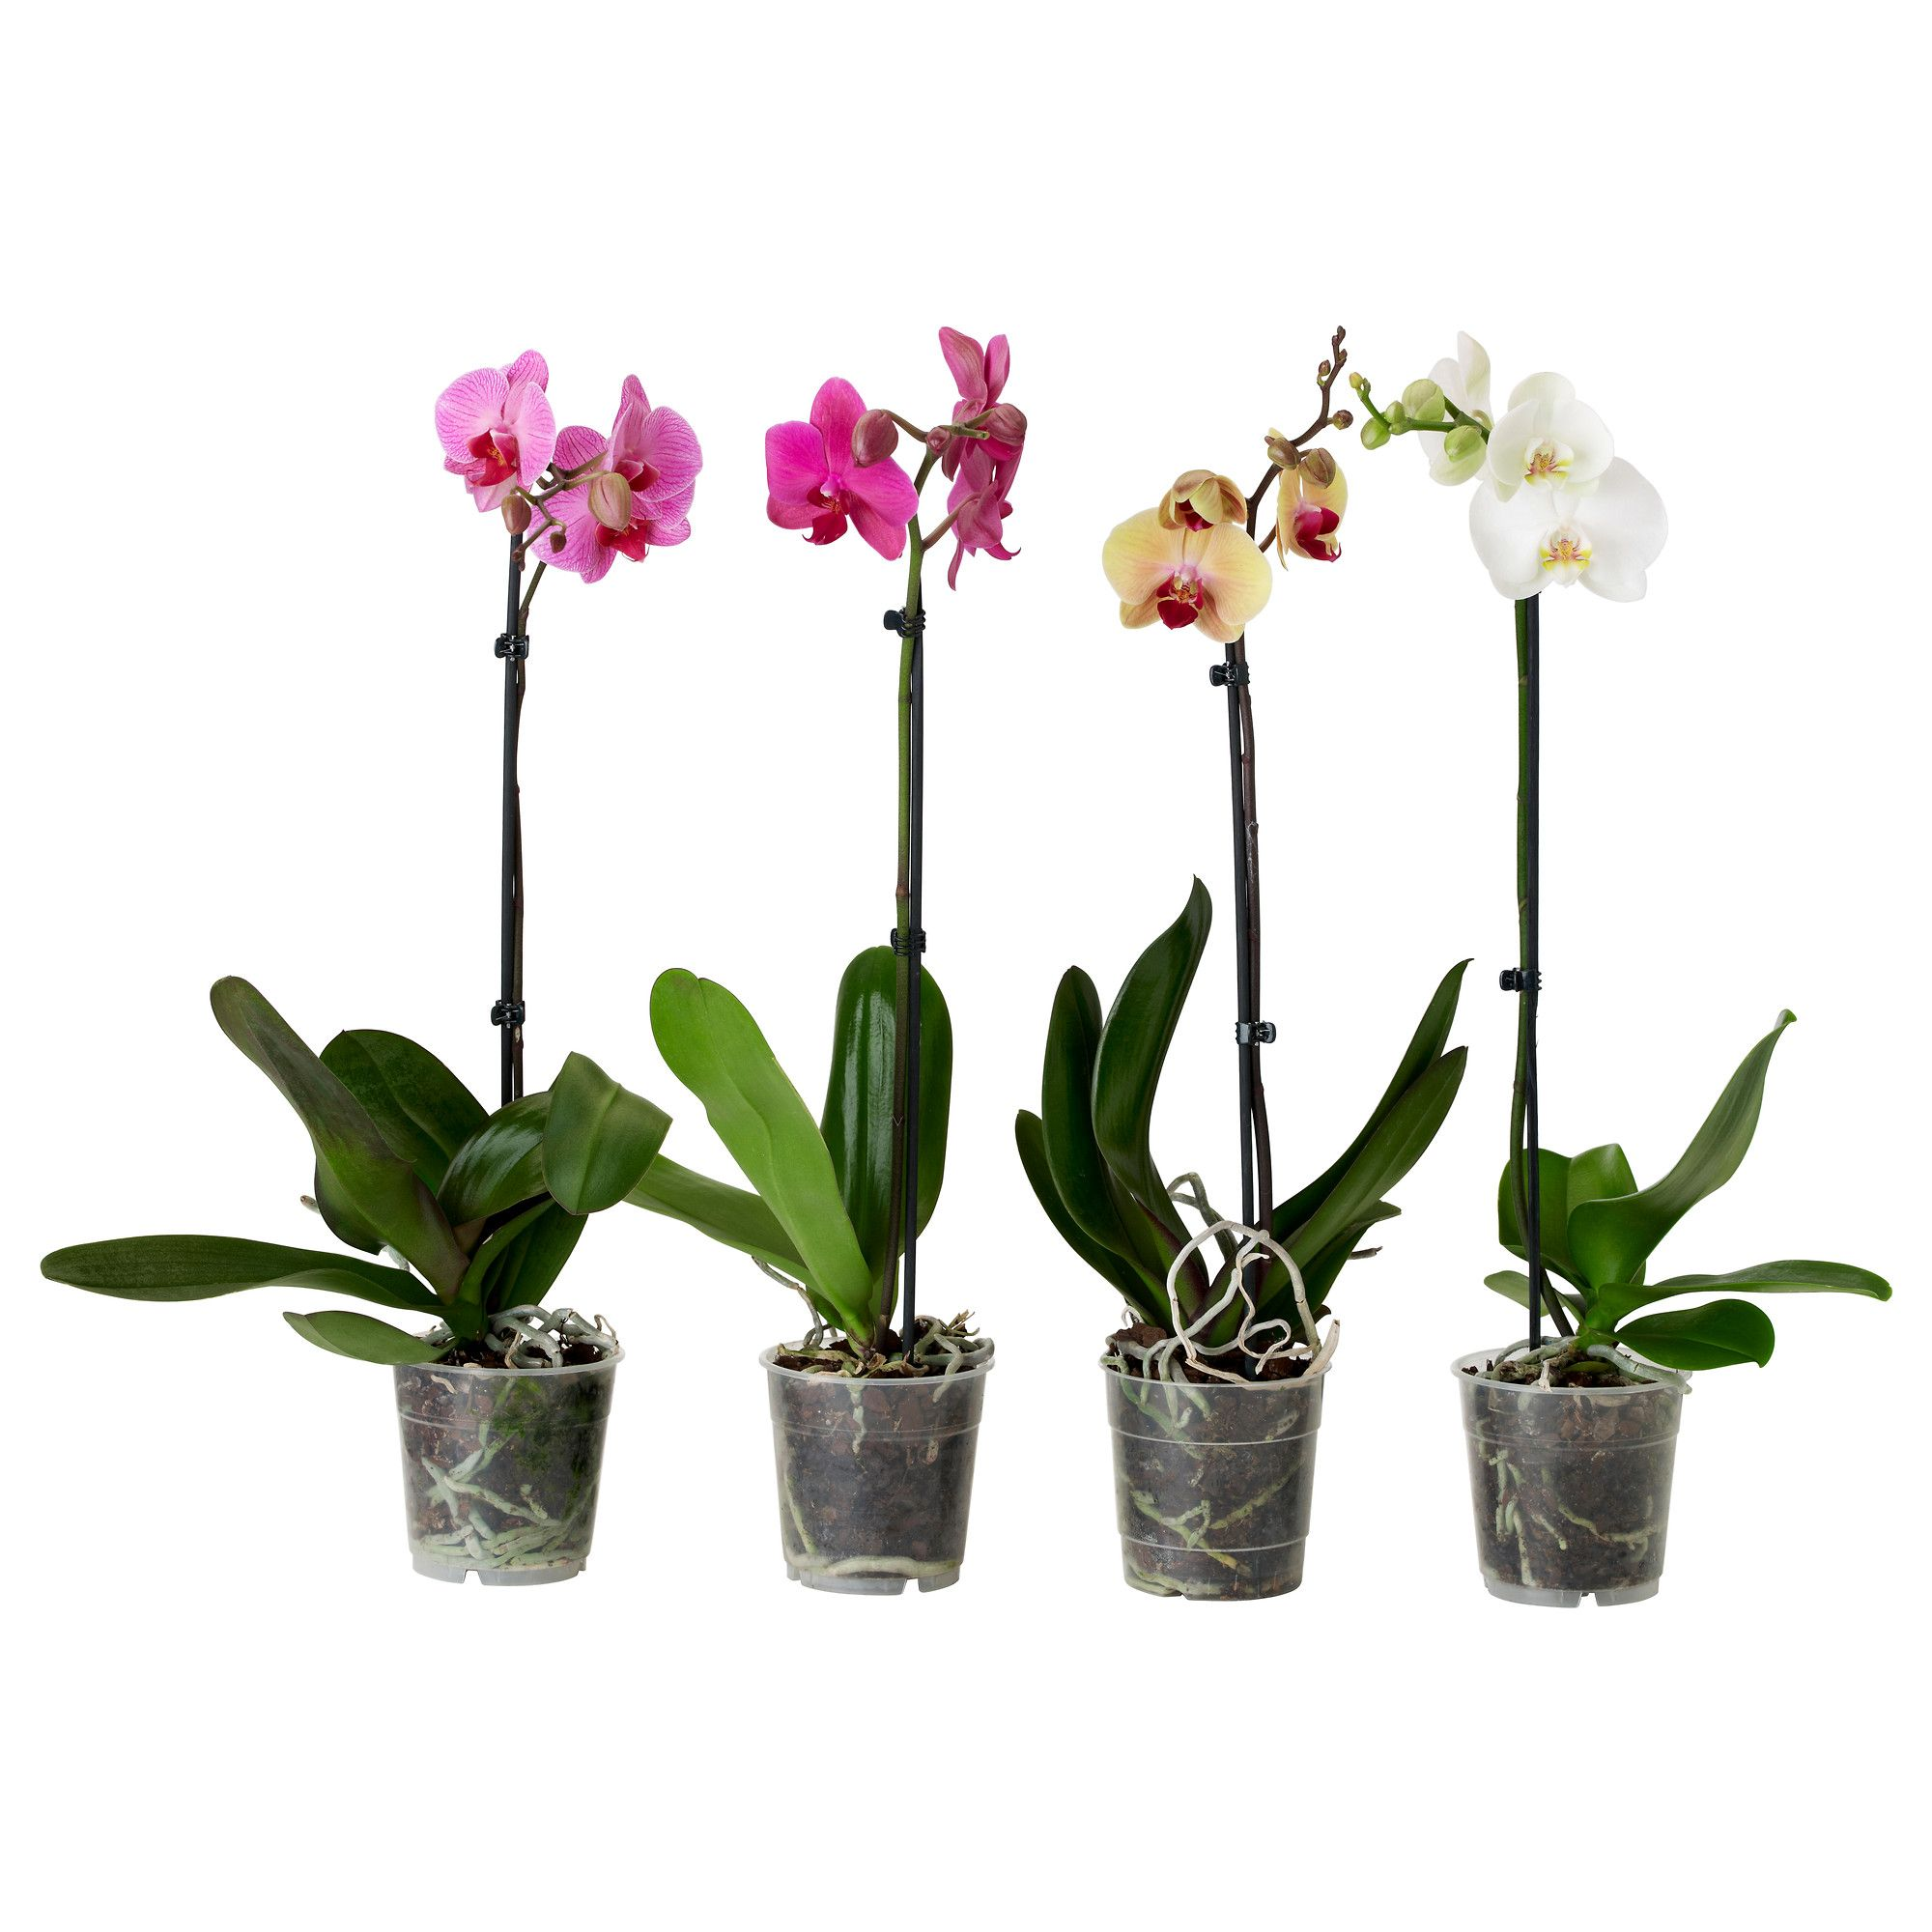 Phalaenopsis potted plant ikea home office pinterest for Ikea plantes